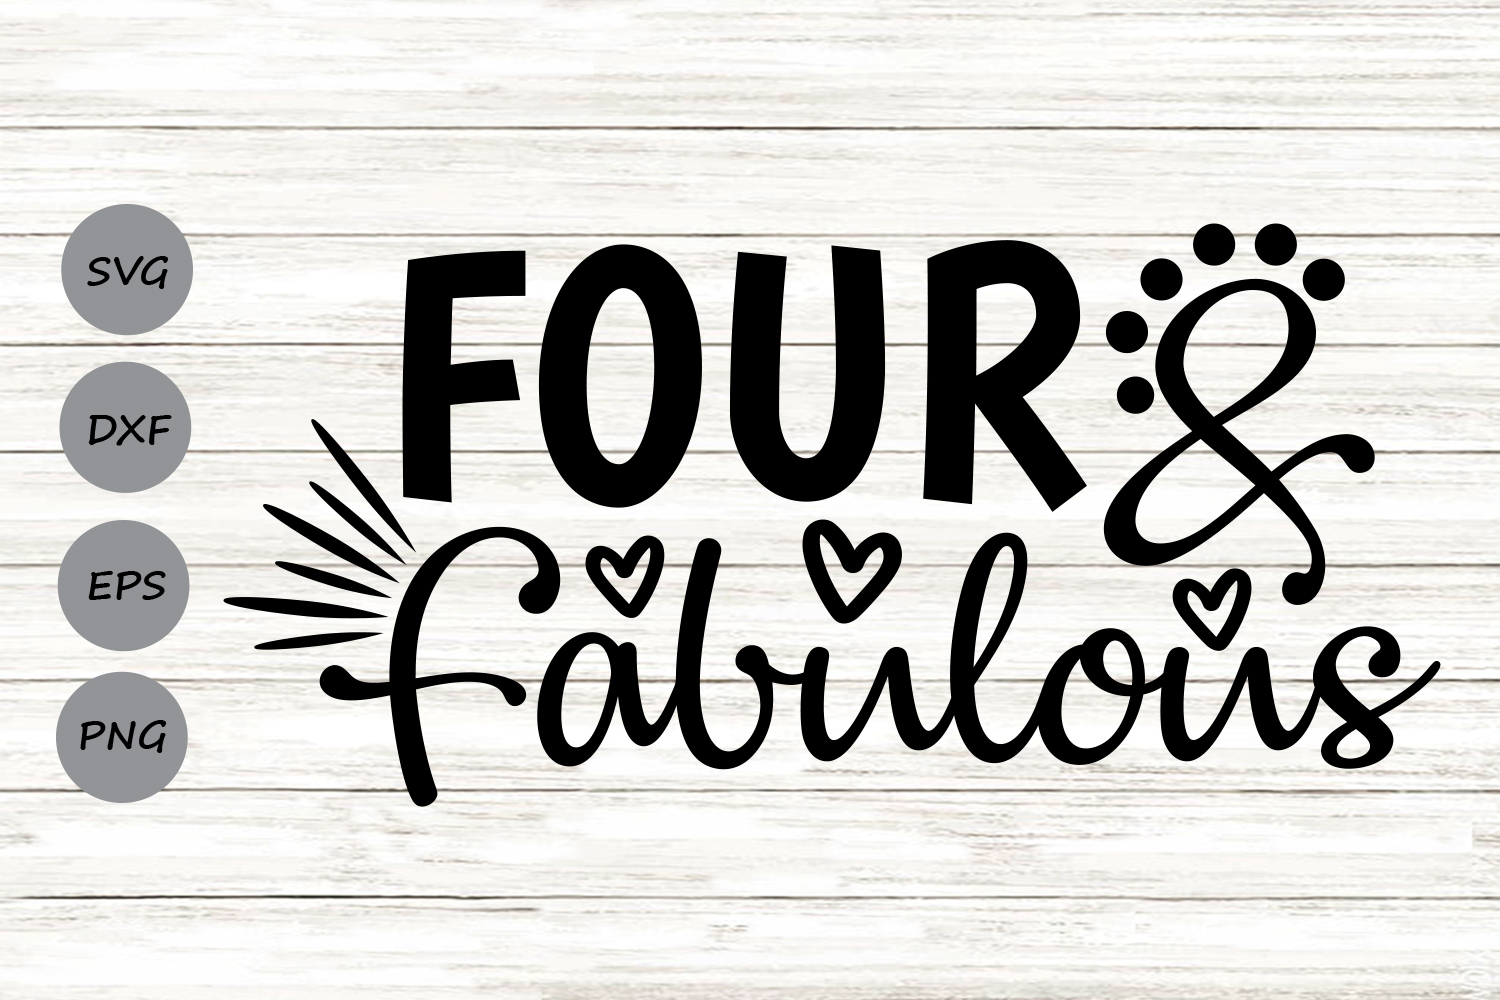 Download Free Four And Fabulous Graphic By Cosmosfineart Creative Fabrica for Cricut Explore, Silhouette and other cutting machines.